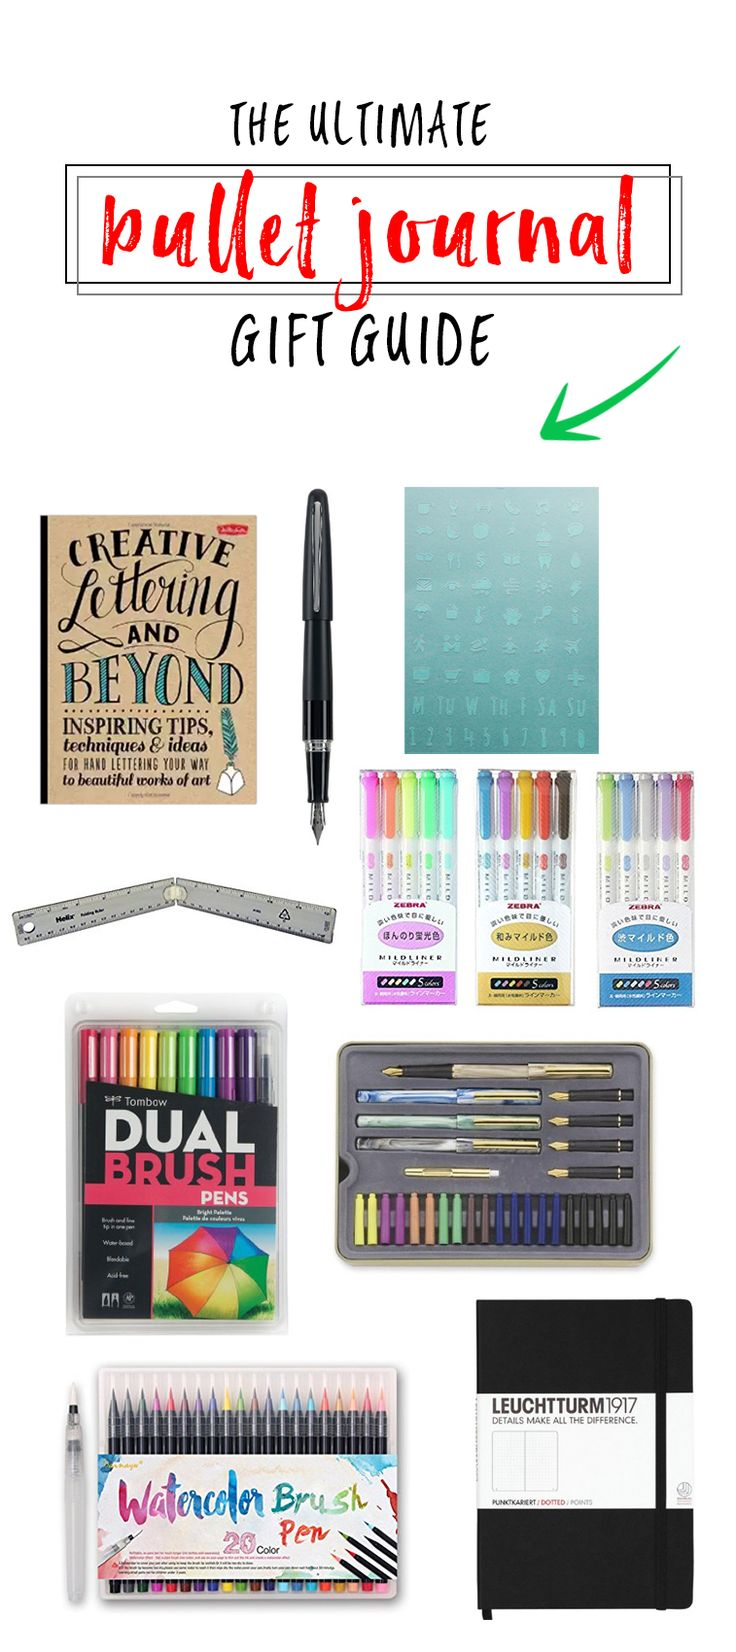 Get ahead of shopping this year and check out our gift guide for that bullet journaler in your life! -- Bullet Journal Gift Guide http://productiveandpretty.com/bullet-journal-gift-guide/?utm_campaign=coschedule&utm_source=pinterest&utm_medium=Liz%20and%20Jen%20%40%20Productive%20and%20Pretty&utm_content=Bullet%20Journal%20Gift%20Guide